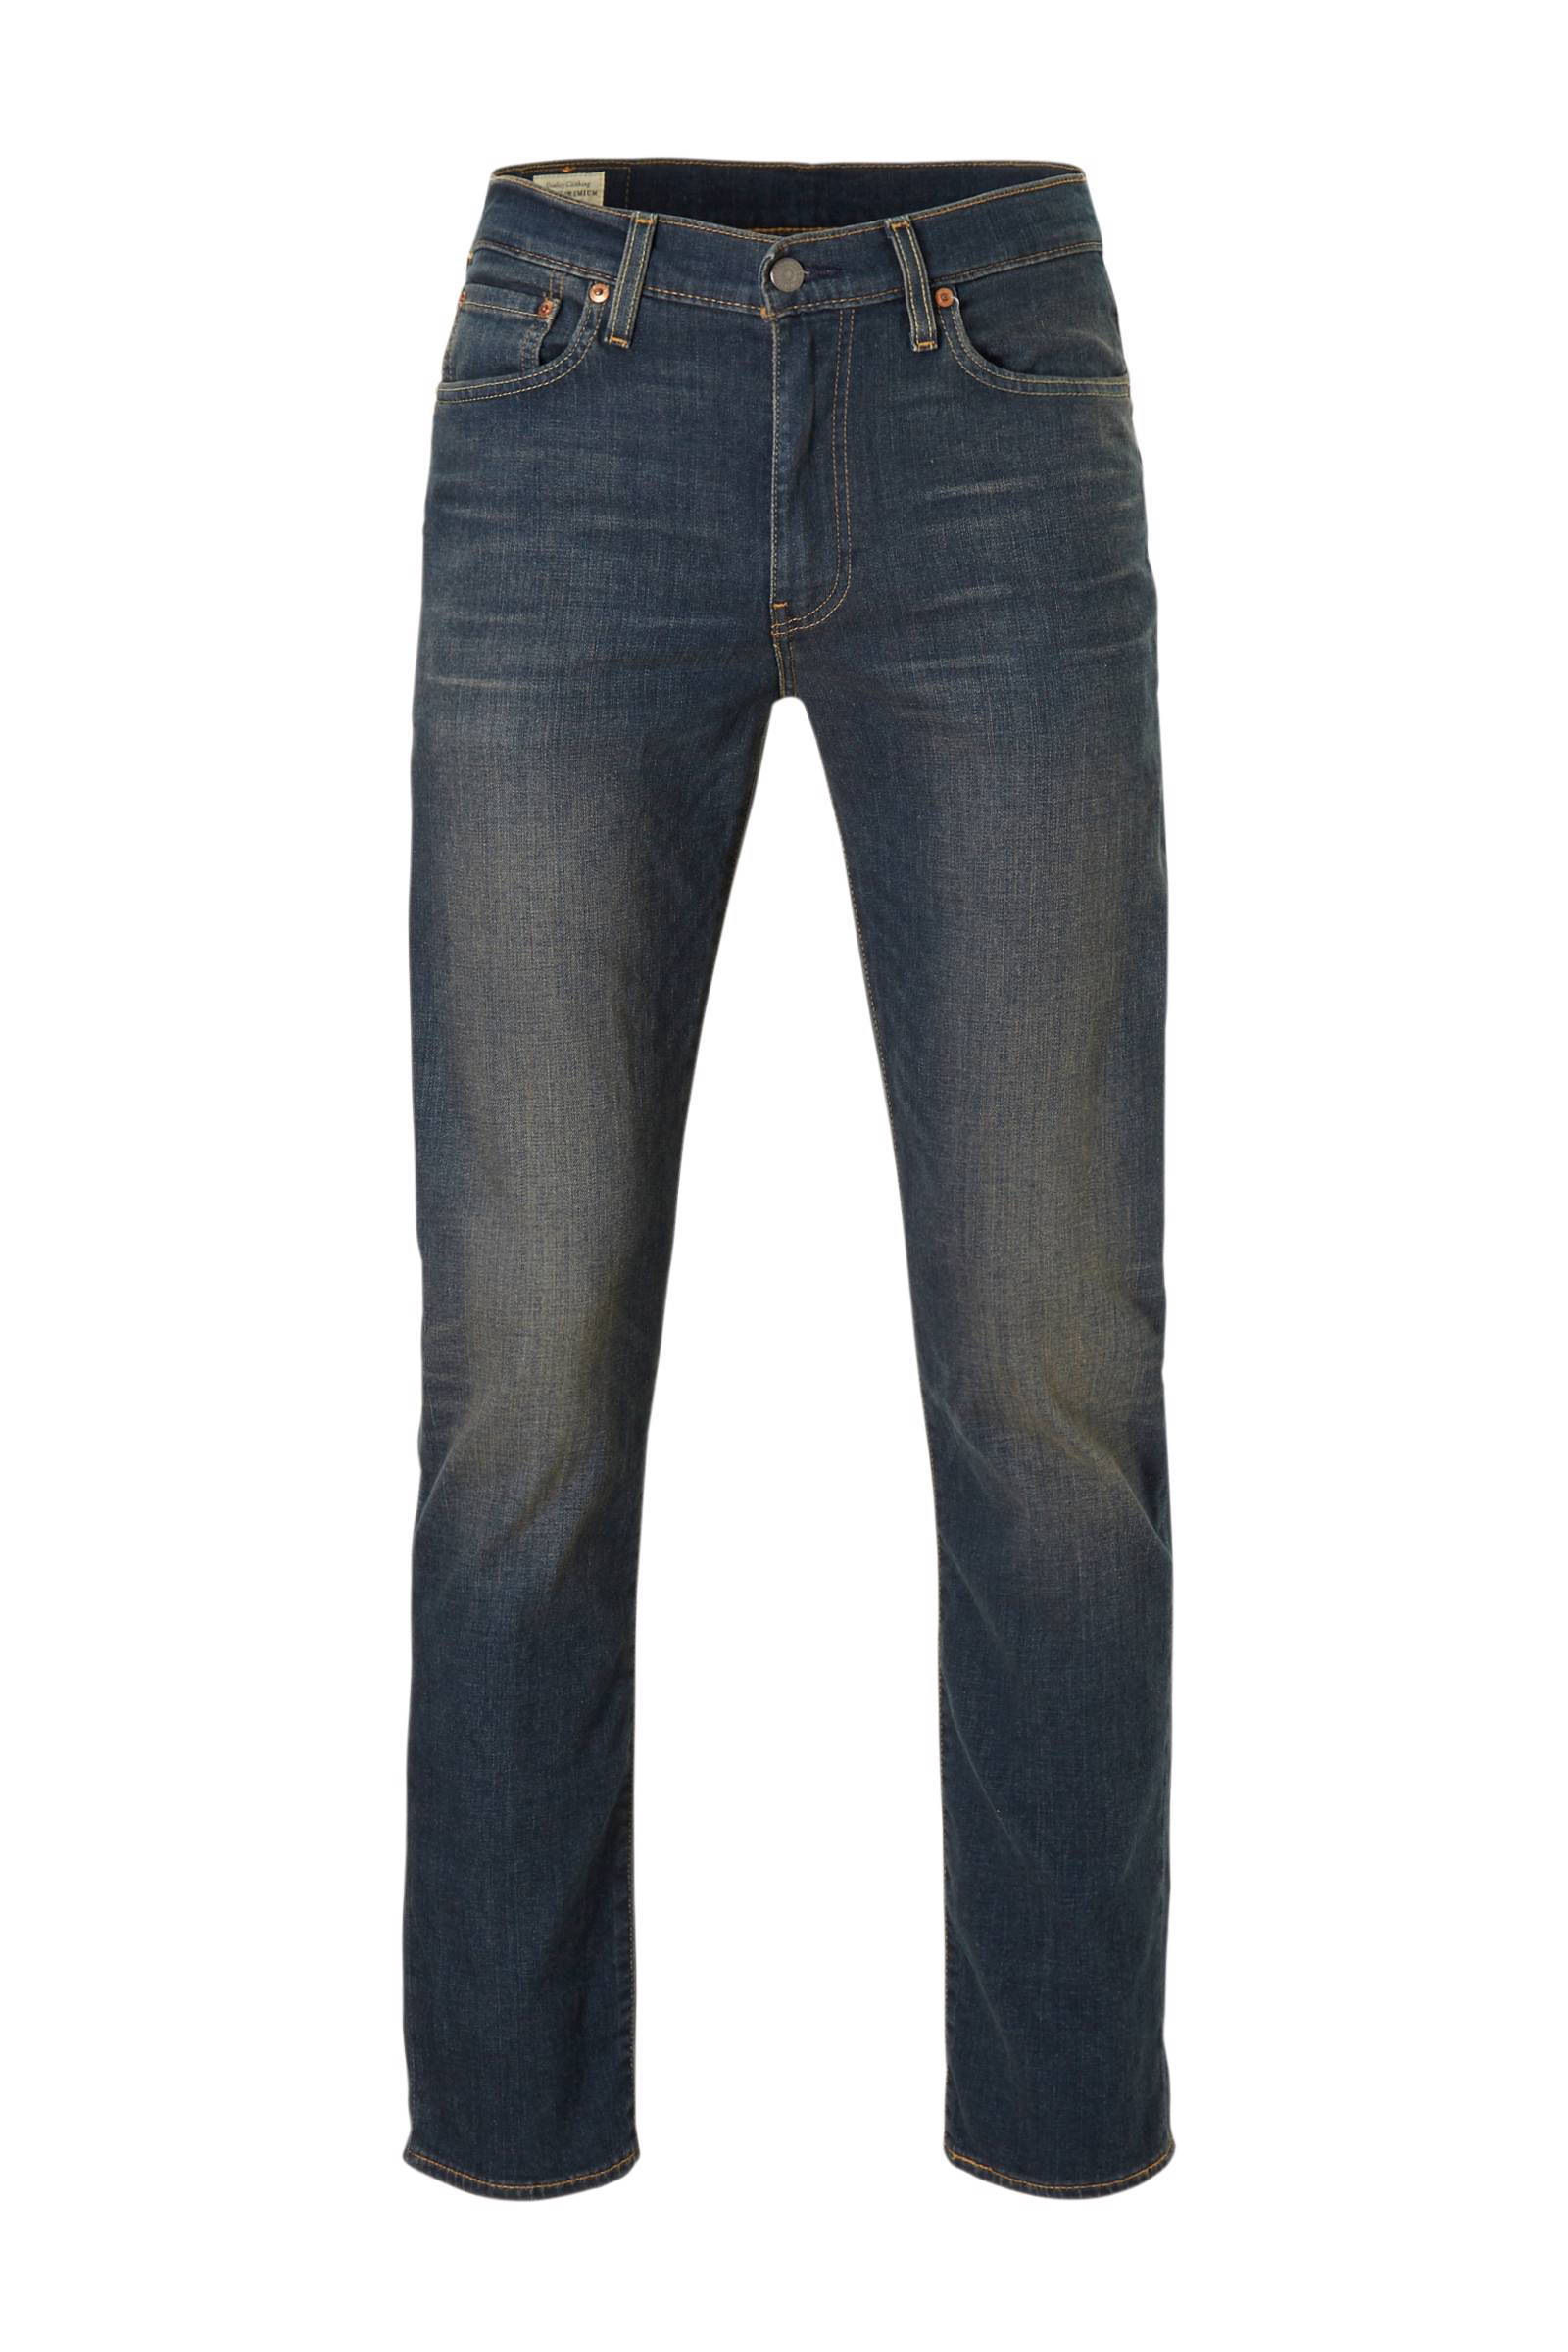 Levi's 514 straight fit jeans (heren)